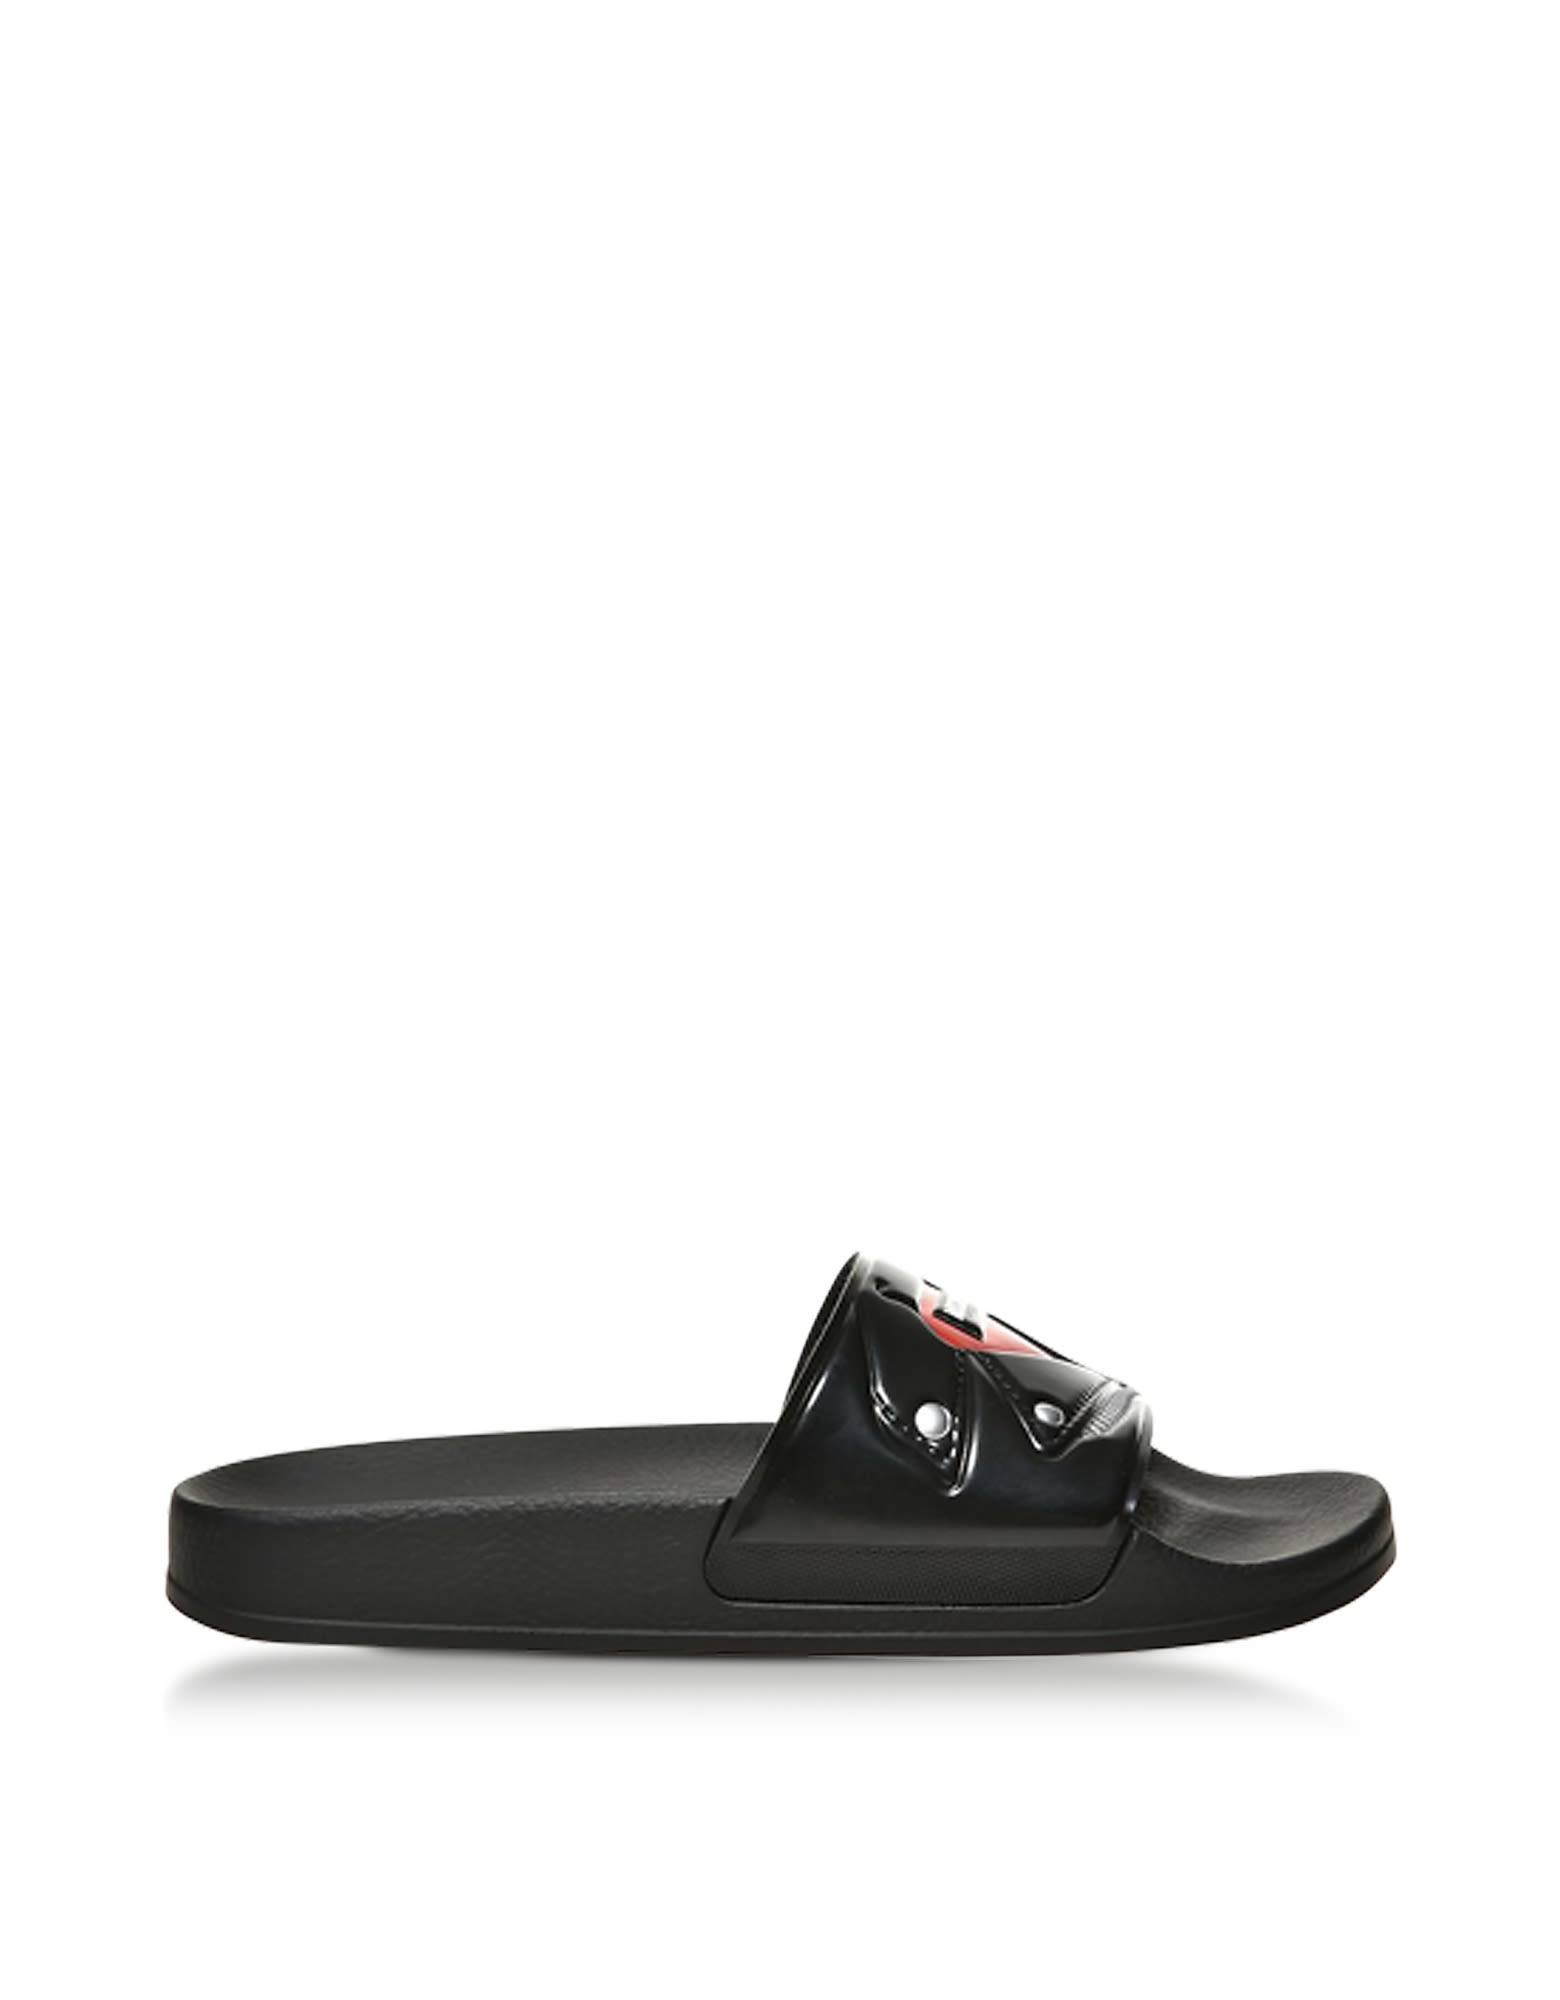 Moschino Shoes, Biker Jacket Printed Pvc Pool Sandals